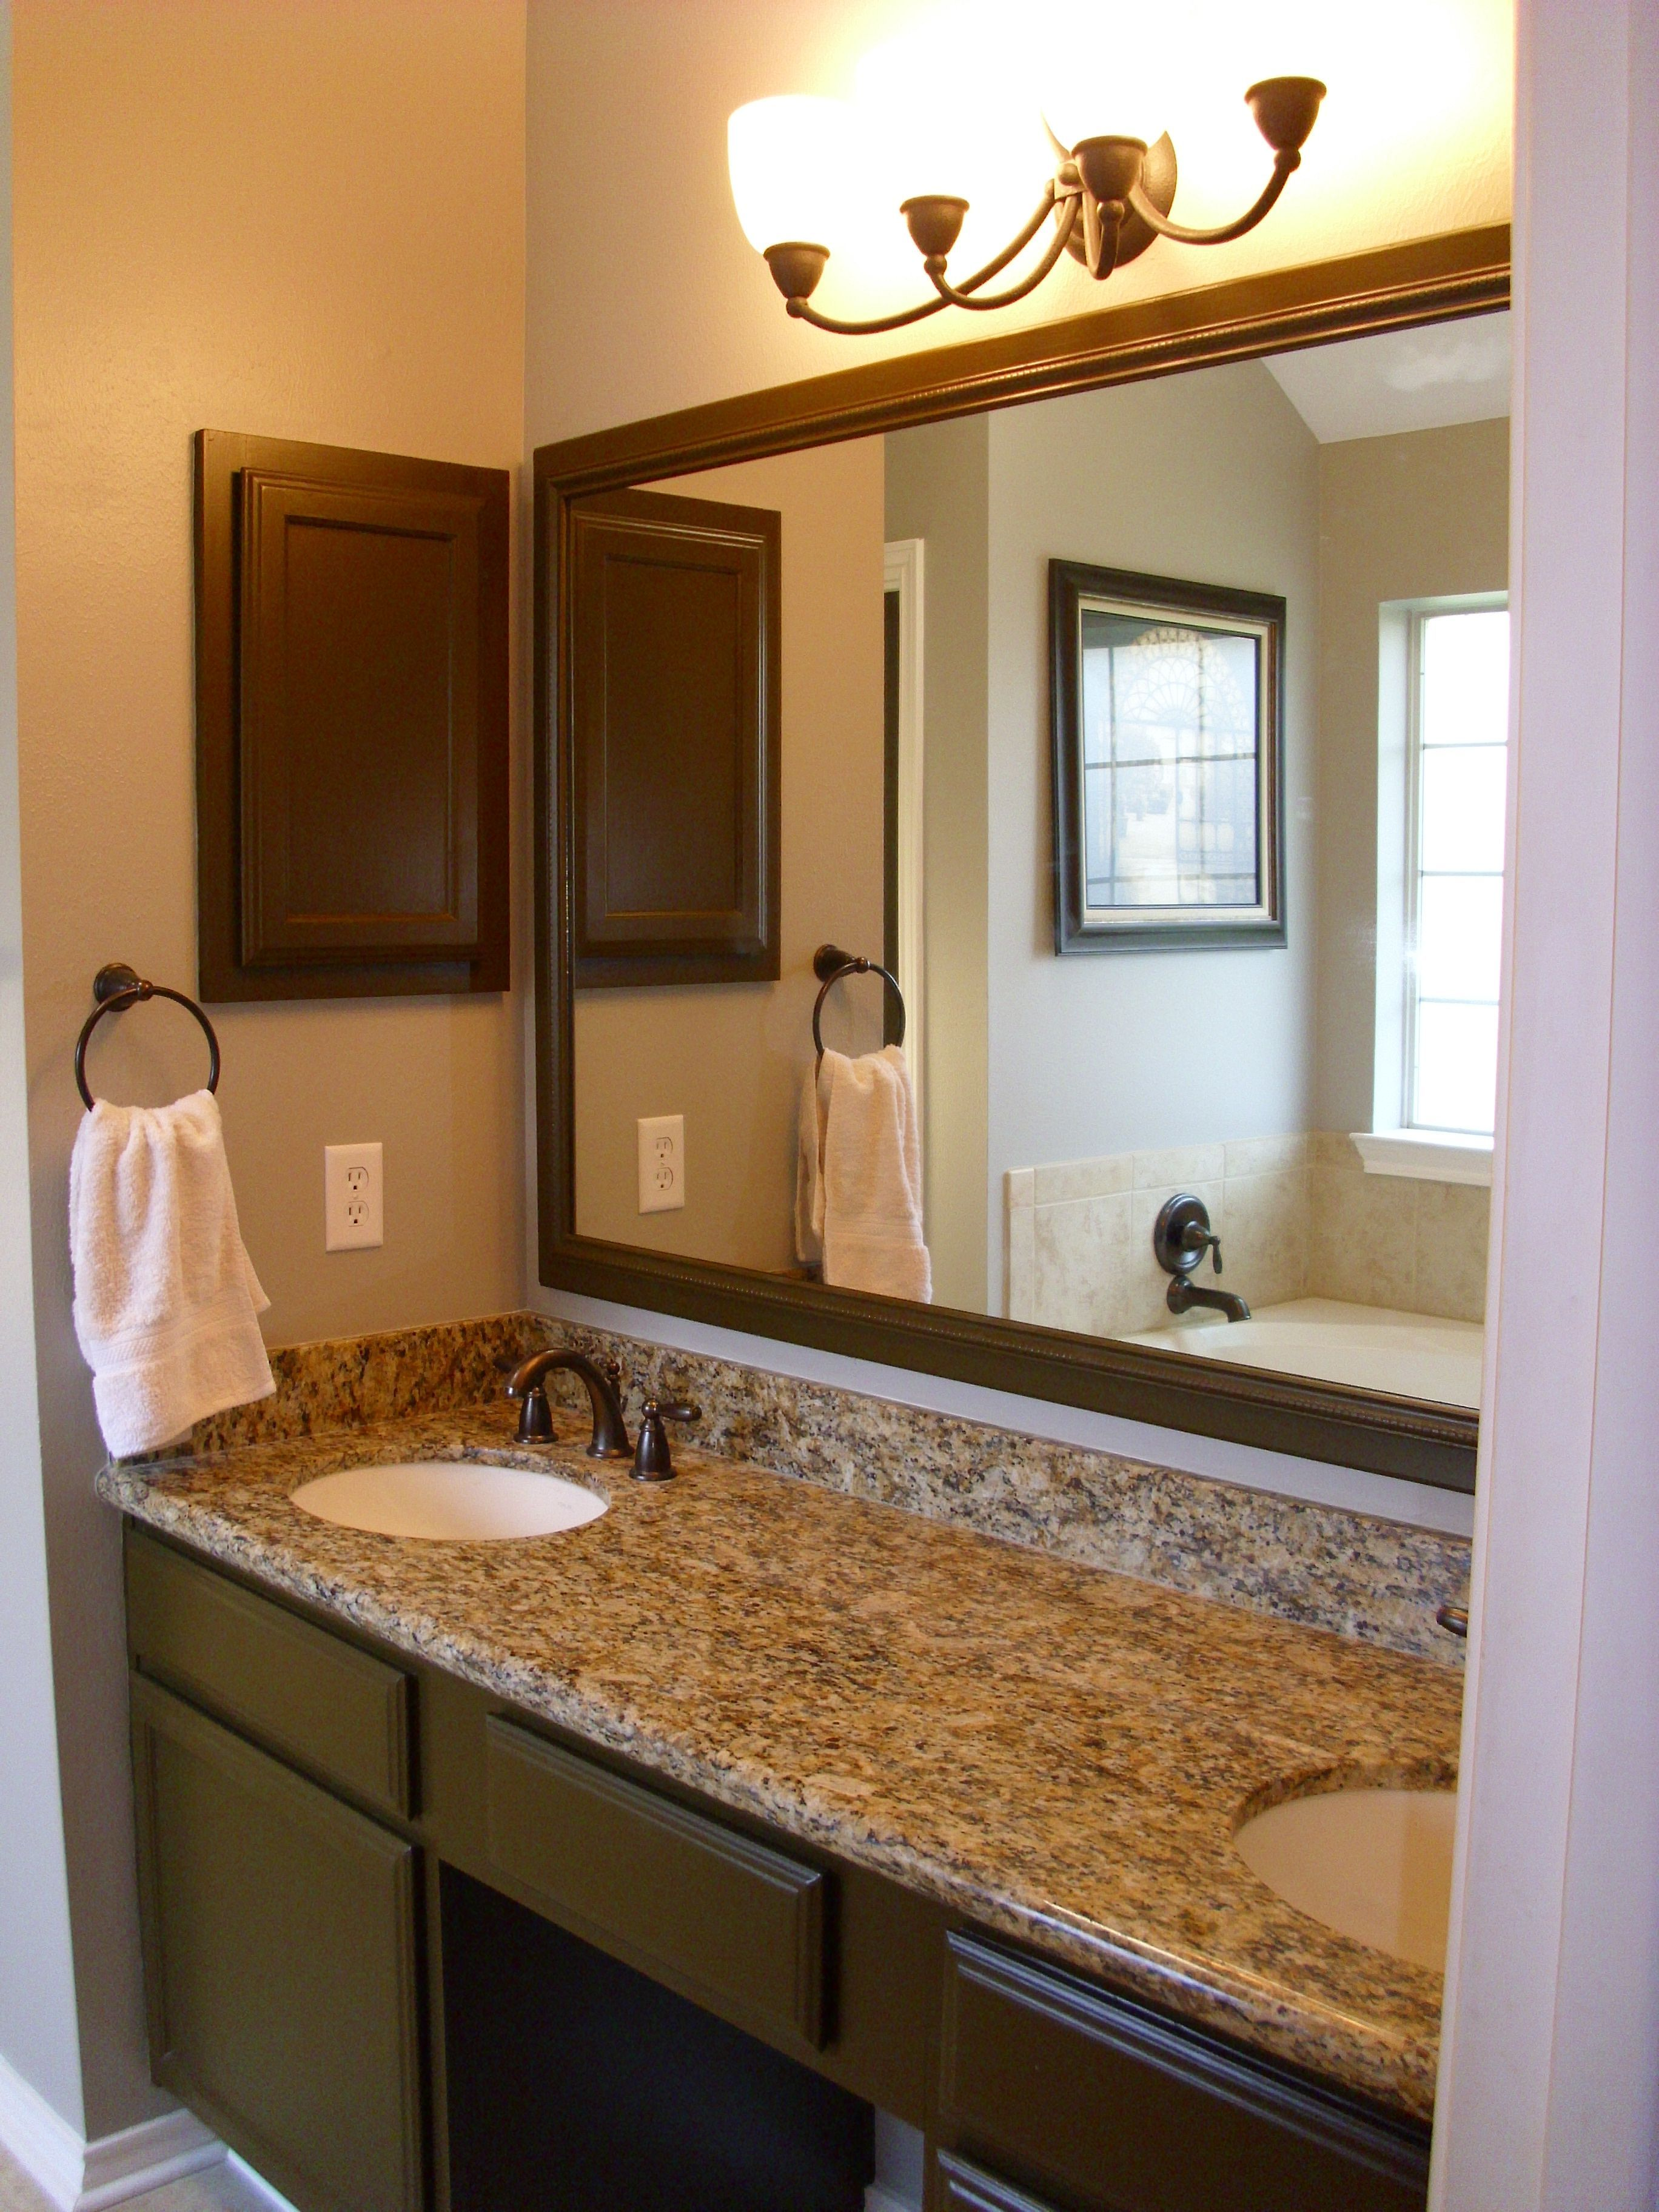 large mirrors for bathroom. Sinks Large Mirror Stone Walls Alluring Desaign Bathroom Ideas Under Small Pednant Lamp On Calm Wall Paint Mirrors For B